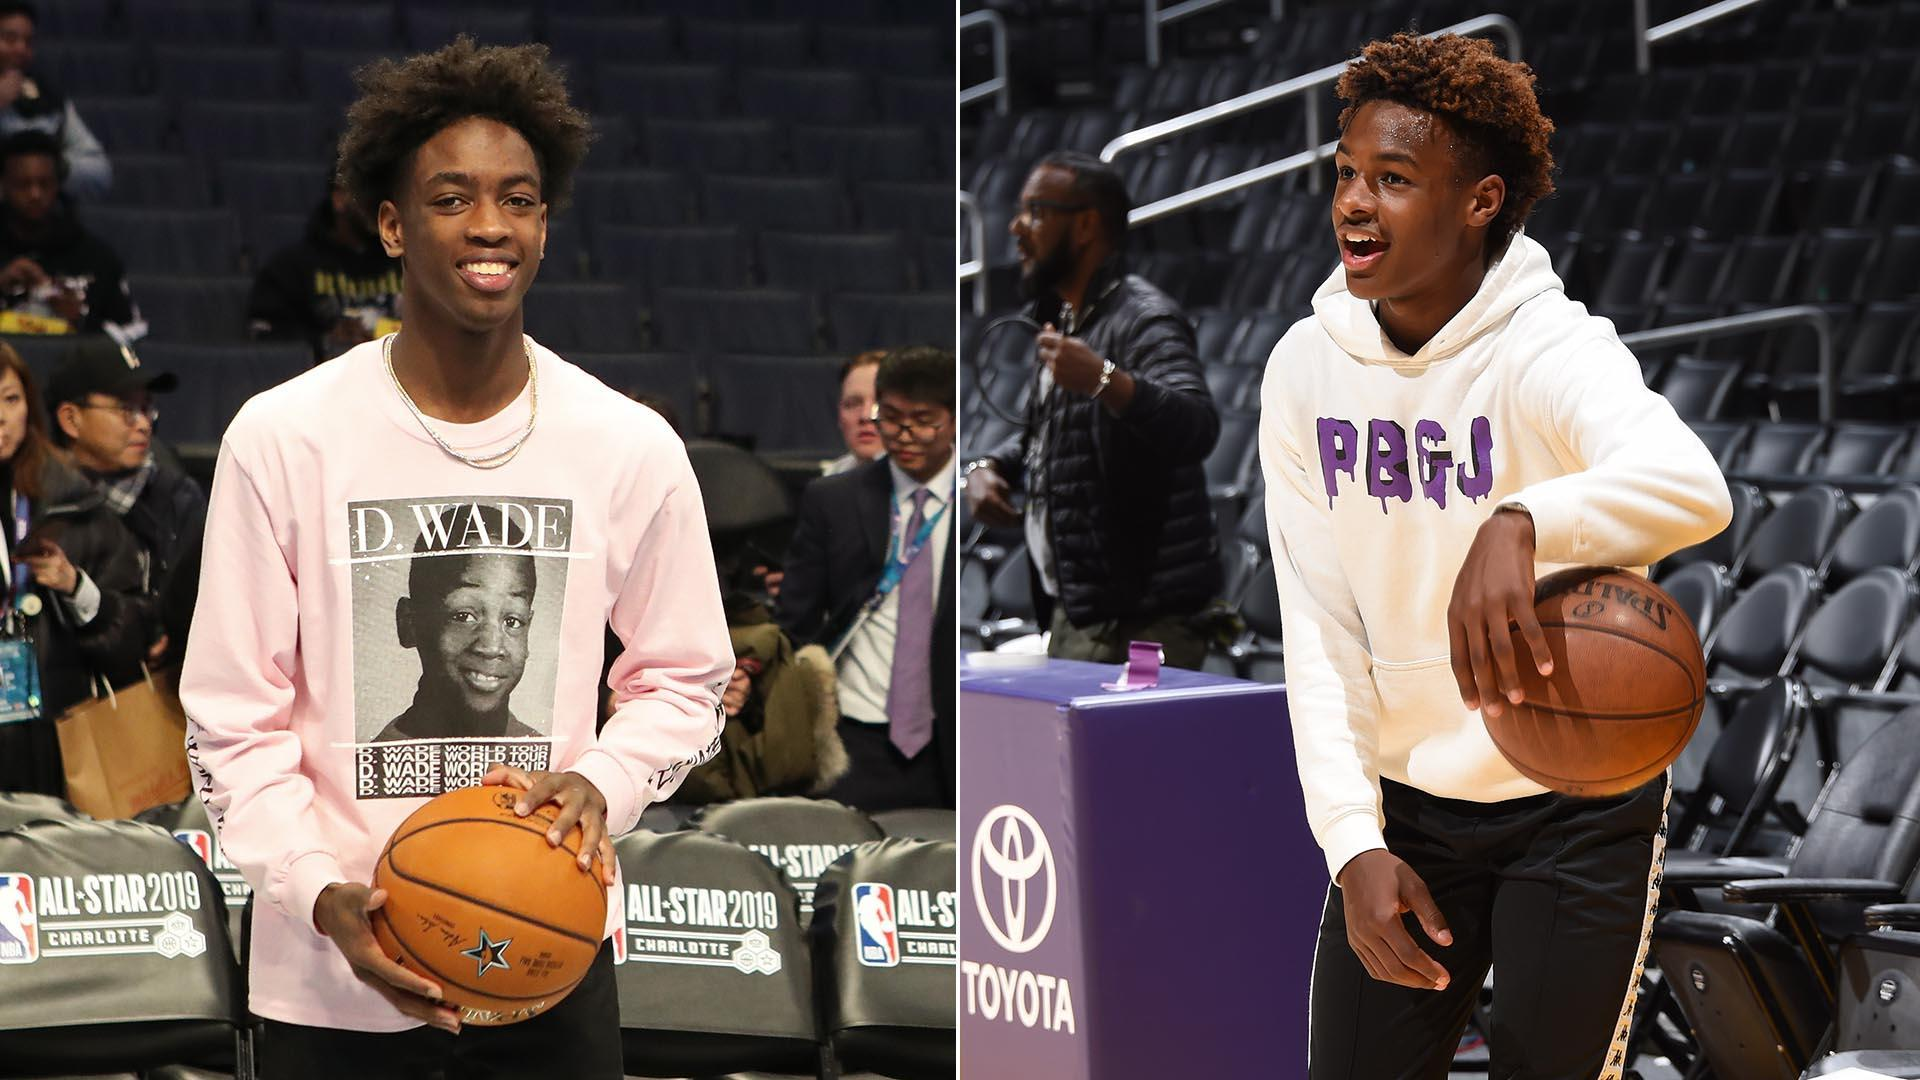 Reports: Sons of LeBron, Wade set to team up in high school